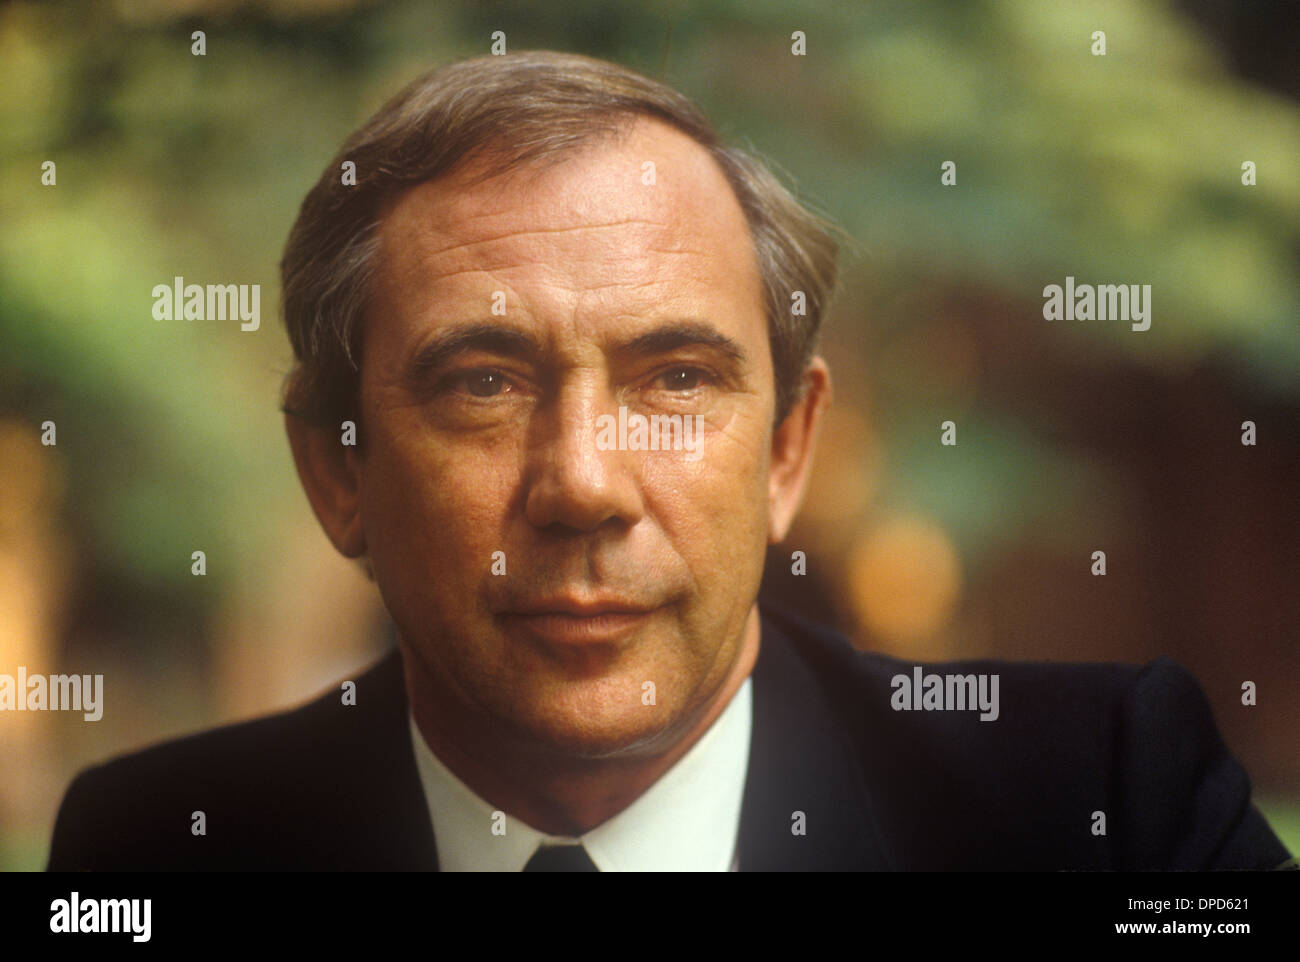 Patrick Walker astrologue 1980 80s HOMER SYKES Photo Stock